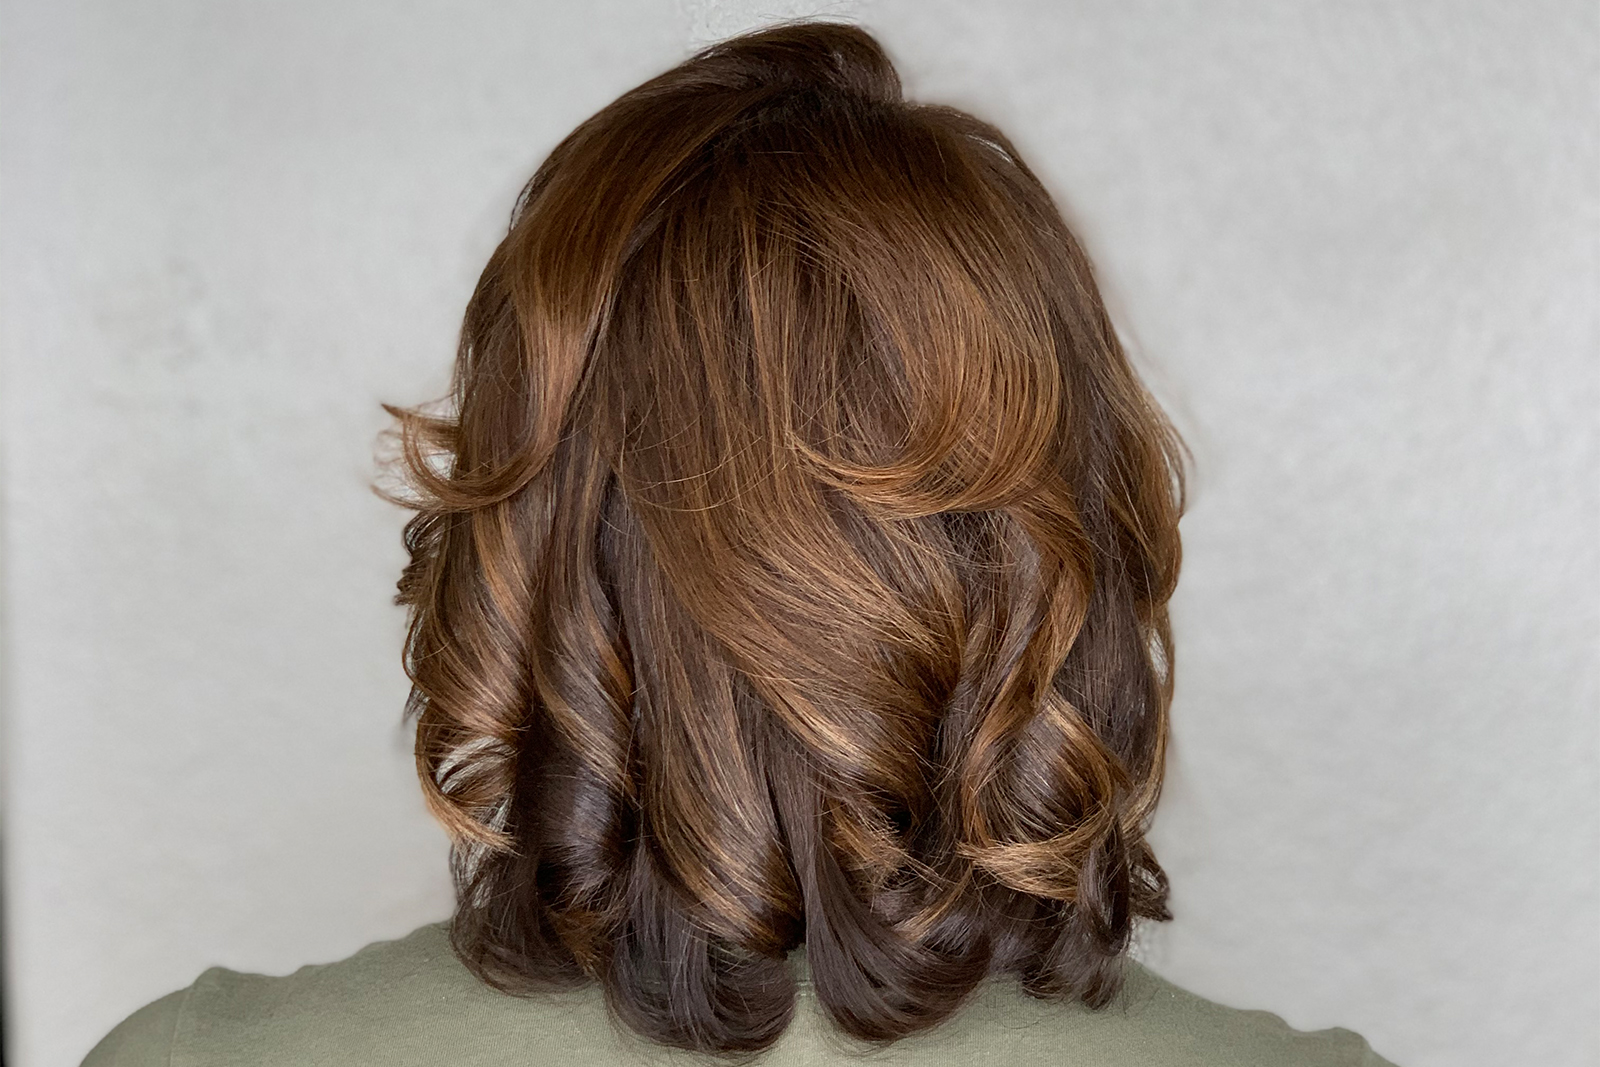 Women's Color, Cut and Style